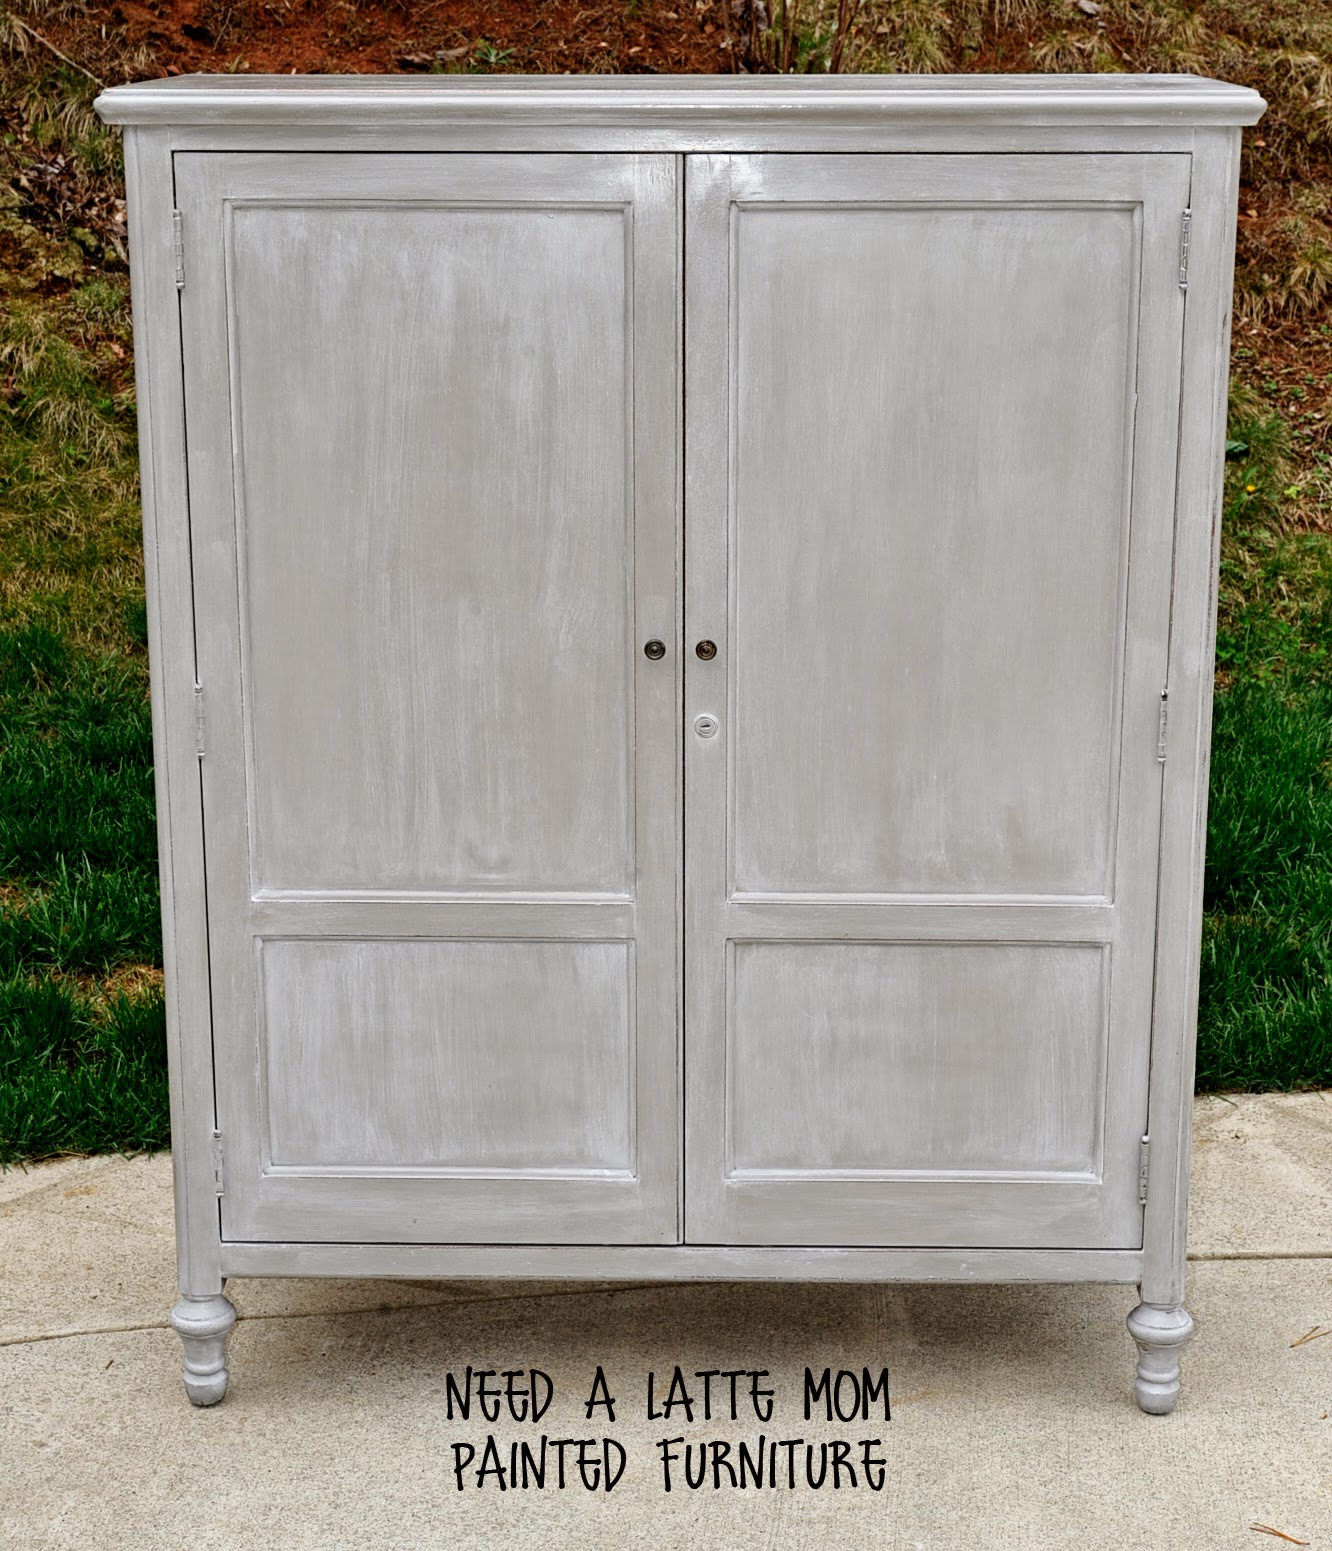 Need A Latte Mom: Annie Sloan French Linen Chalk Paint And Maison Blanche Lime Wax {Before And